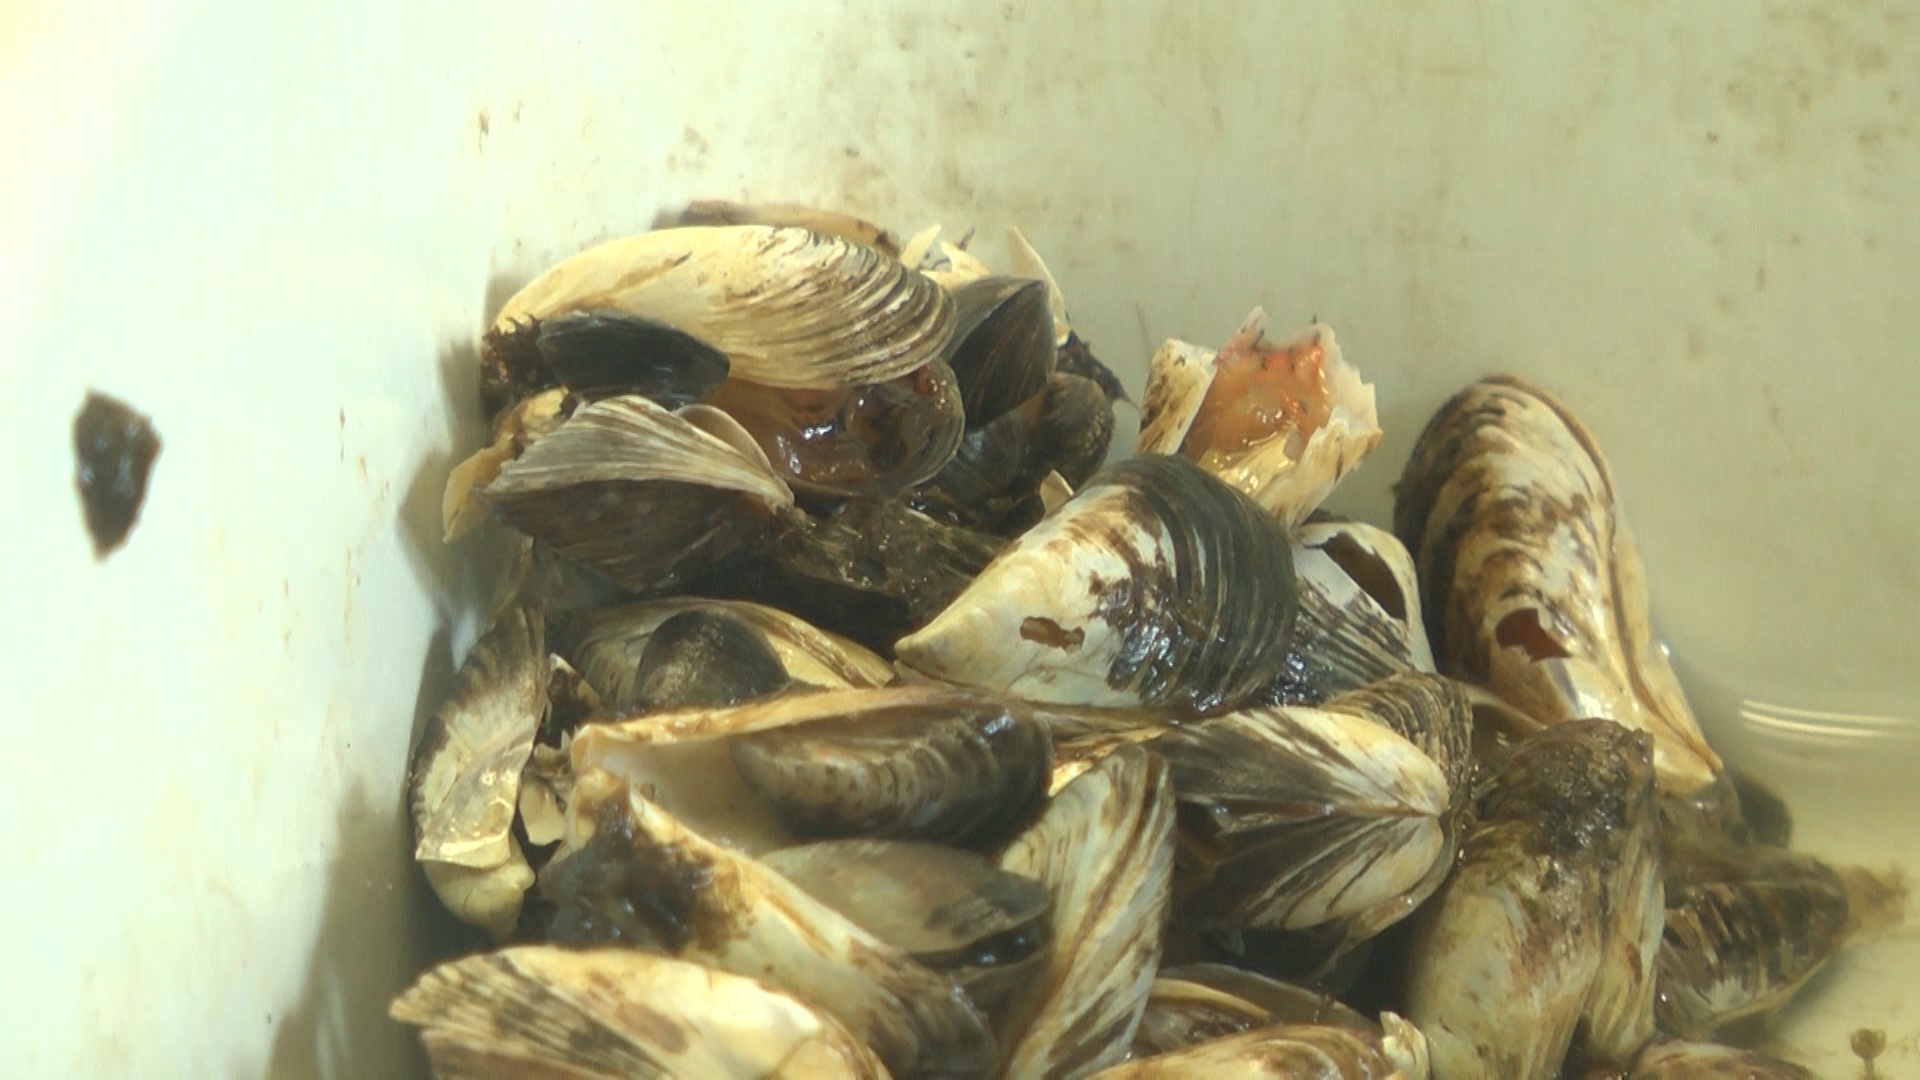 Scientists Study Invasive Species To Track Chemical